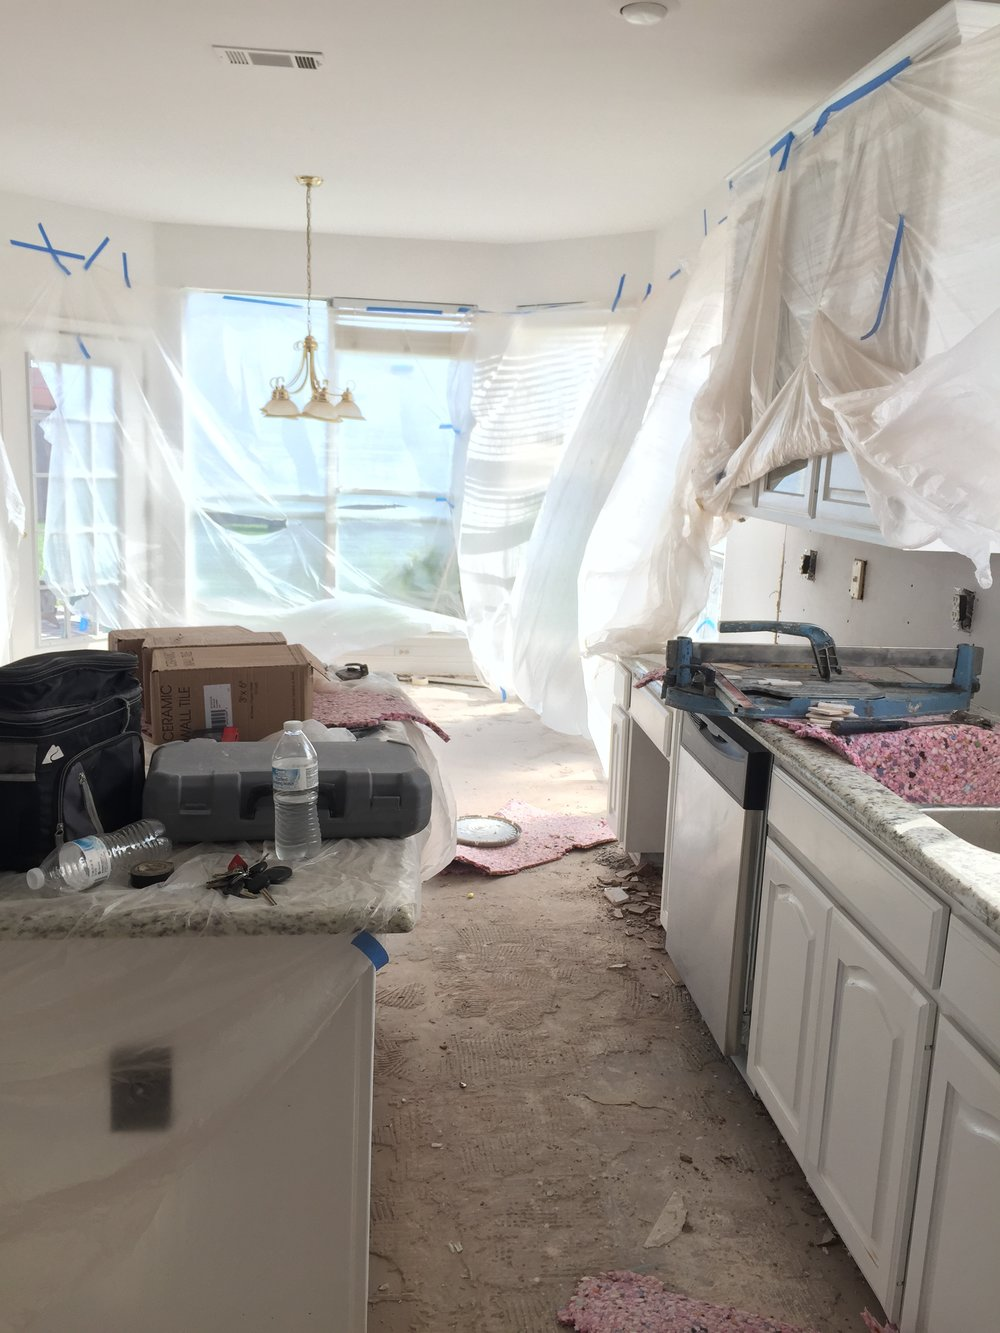 Mid-kitchen overhaul. Now THIS is my dream situation with two dogs and a toddler and working from home. Just.Kidding. We ate a lot of Spongebob microwave macaroni.